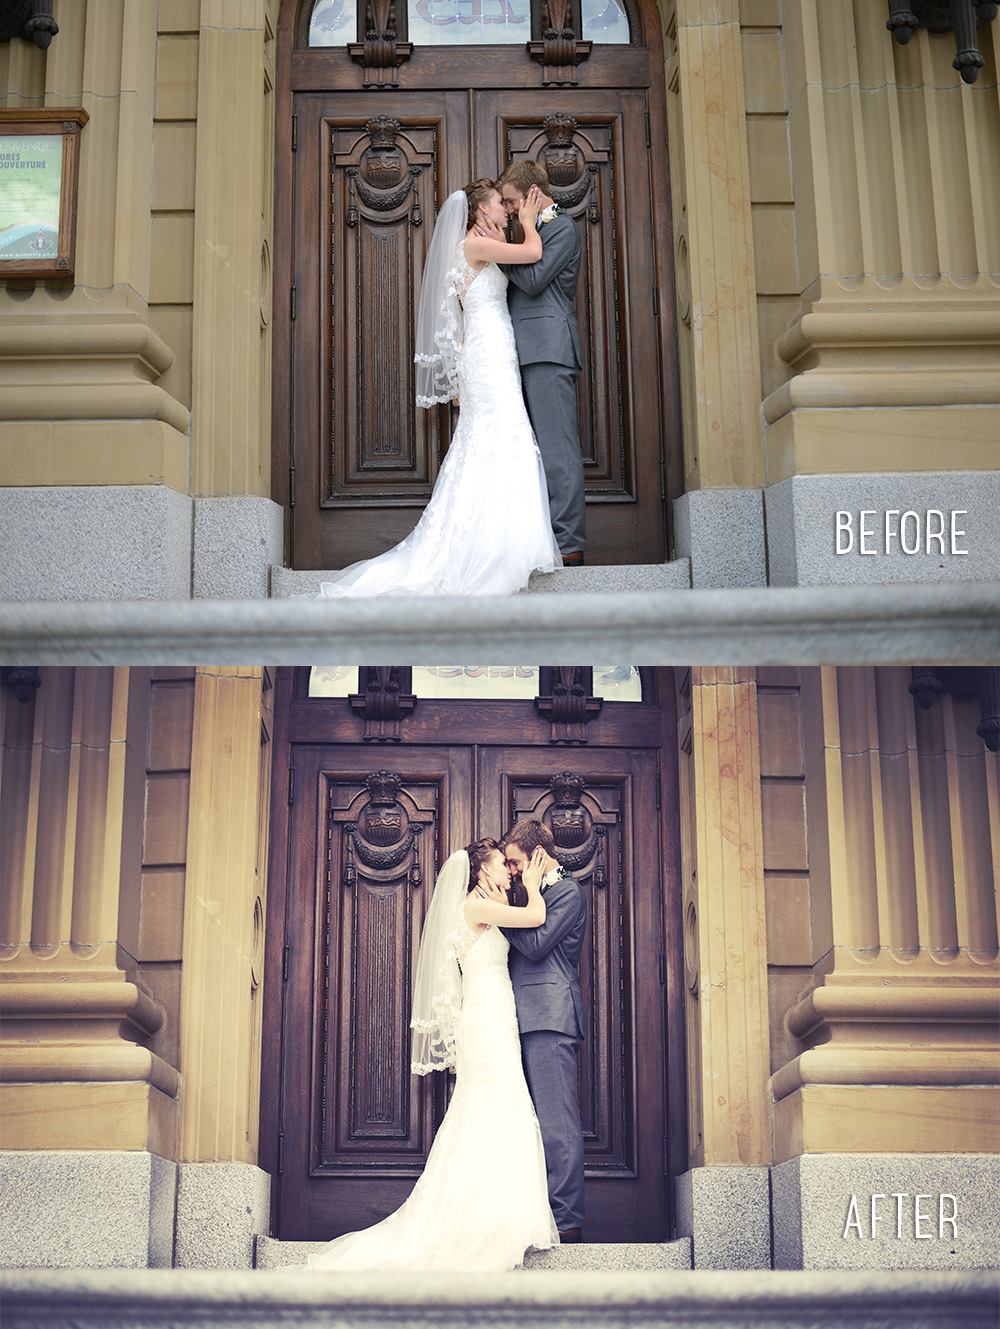 Wedding Photography | Edited photos before and after